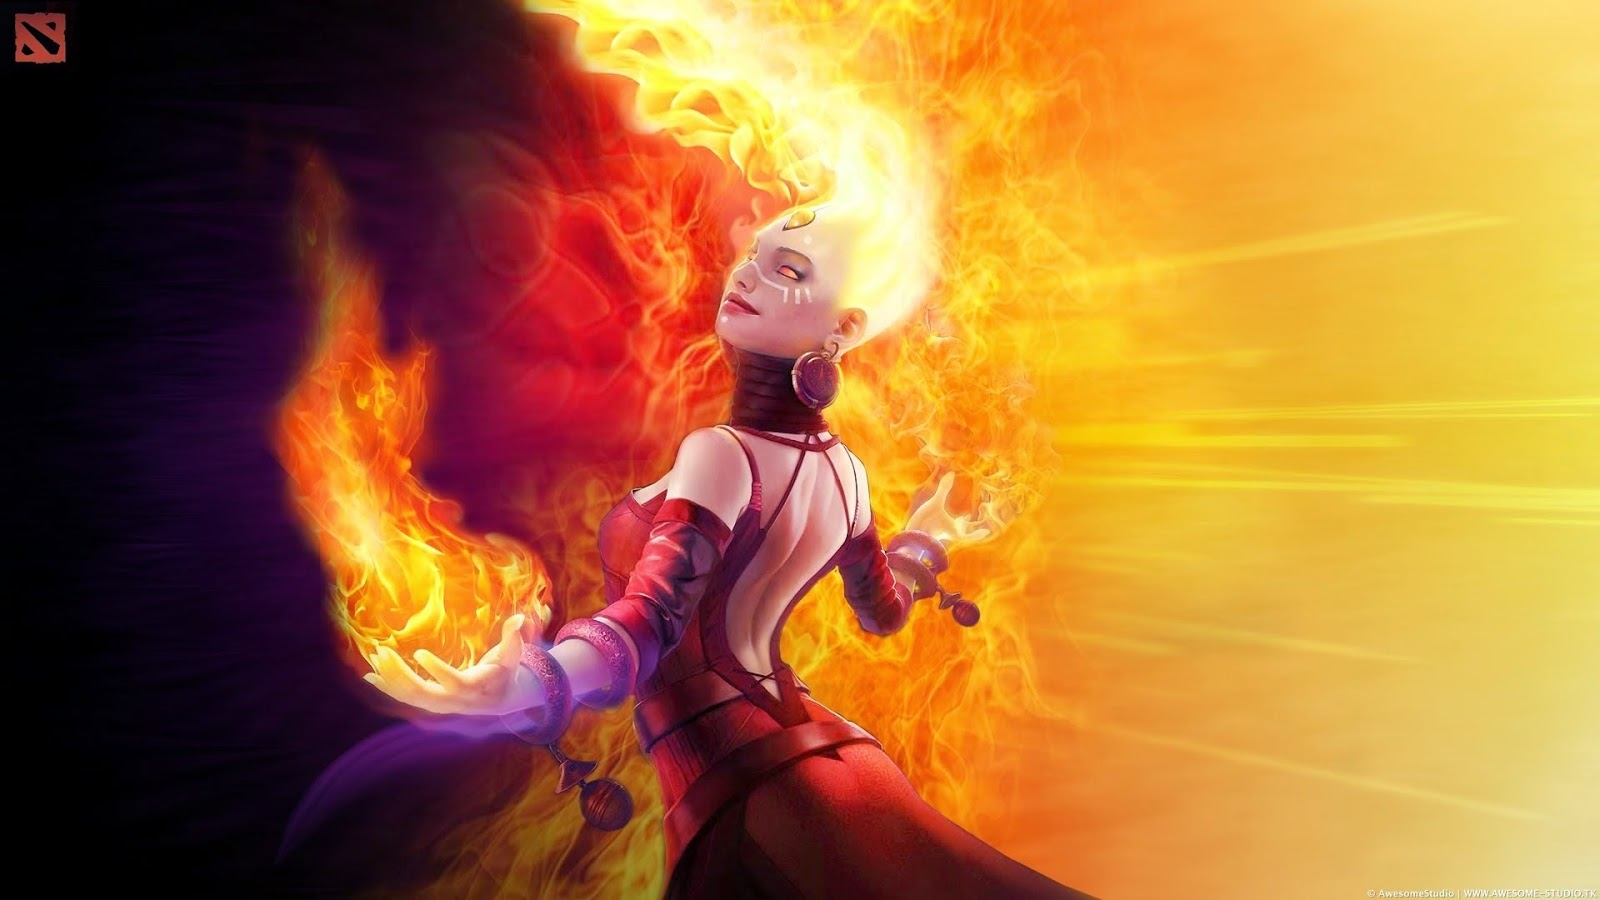 Lina Arcana - Fiery Soul of The Slayer